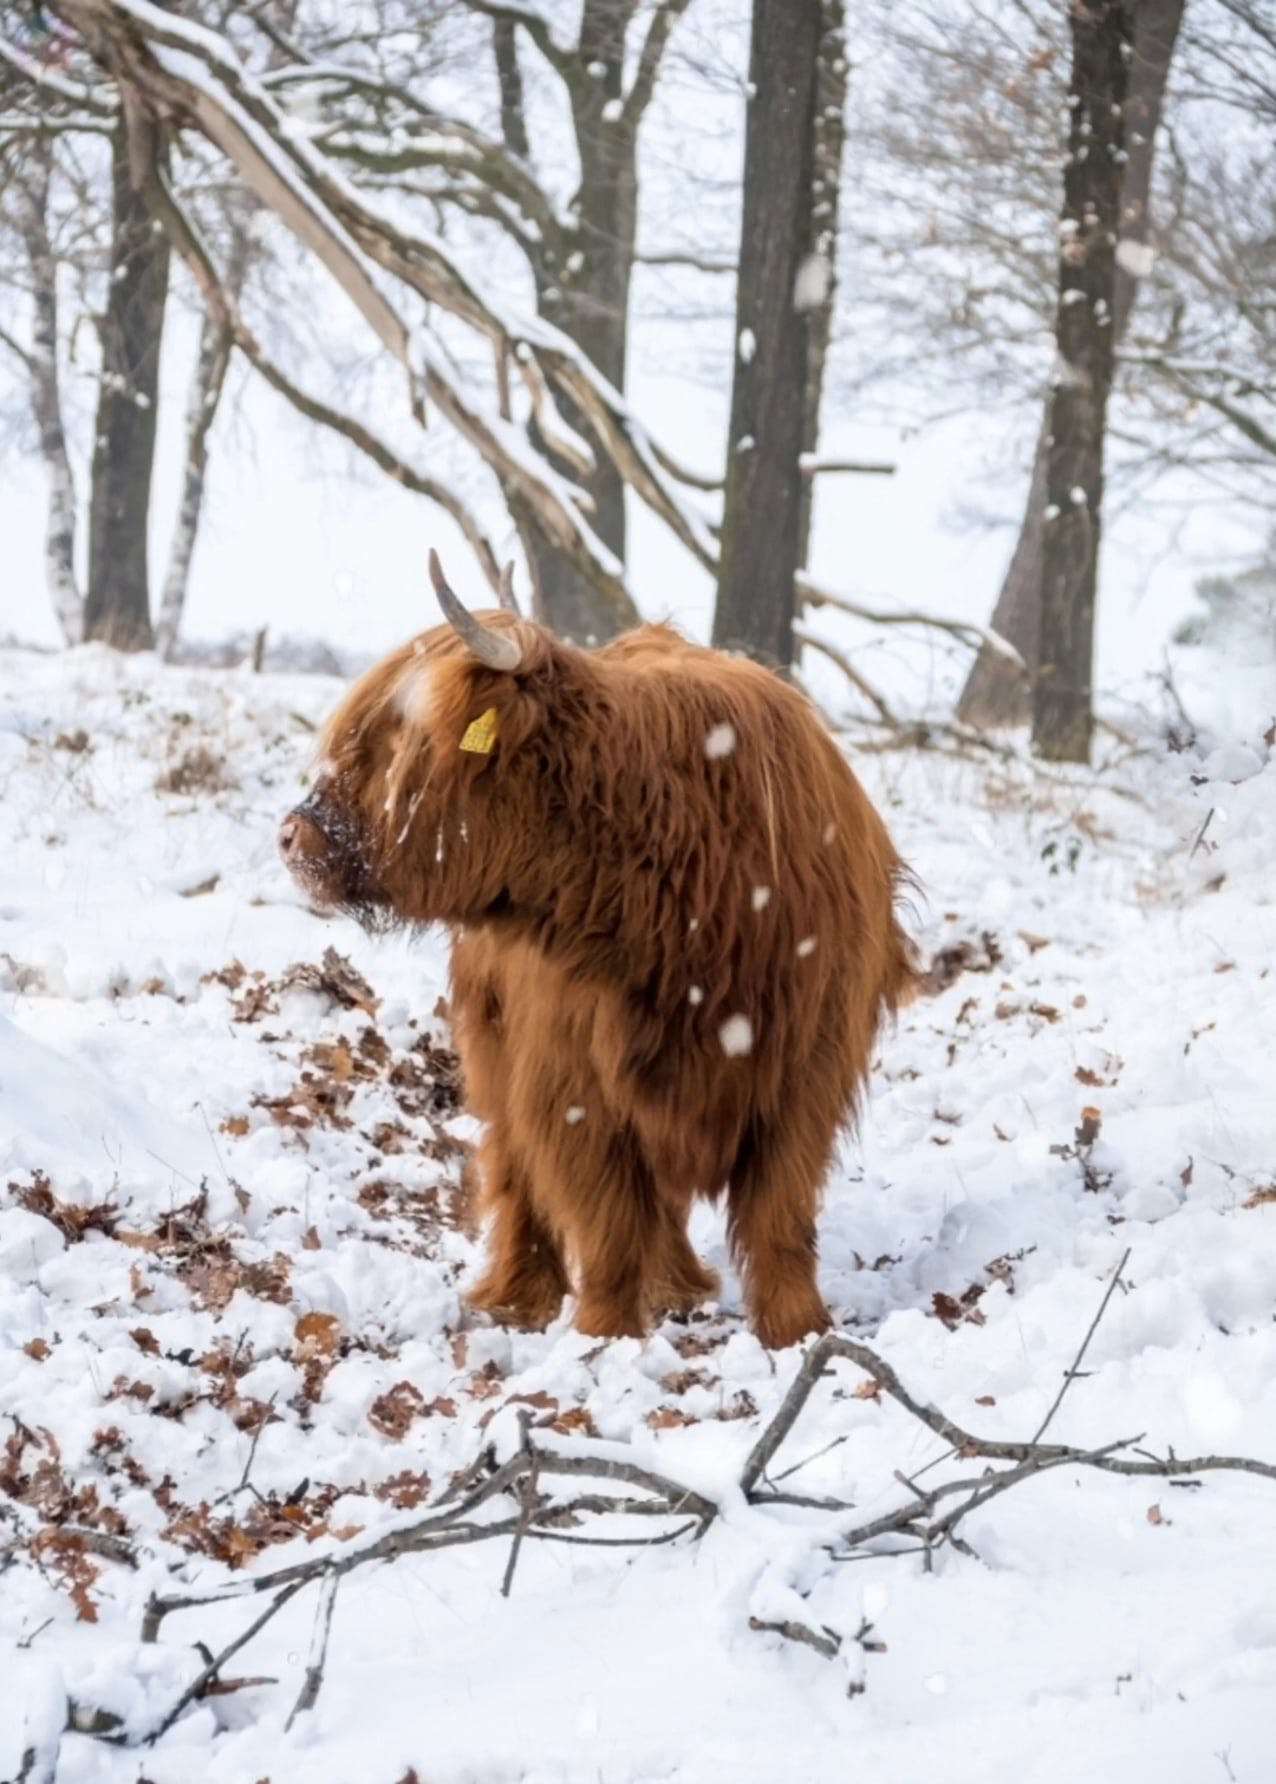 An Animal On A Winter Landscape